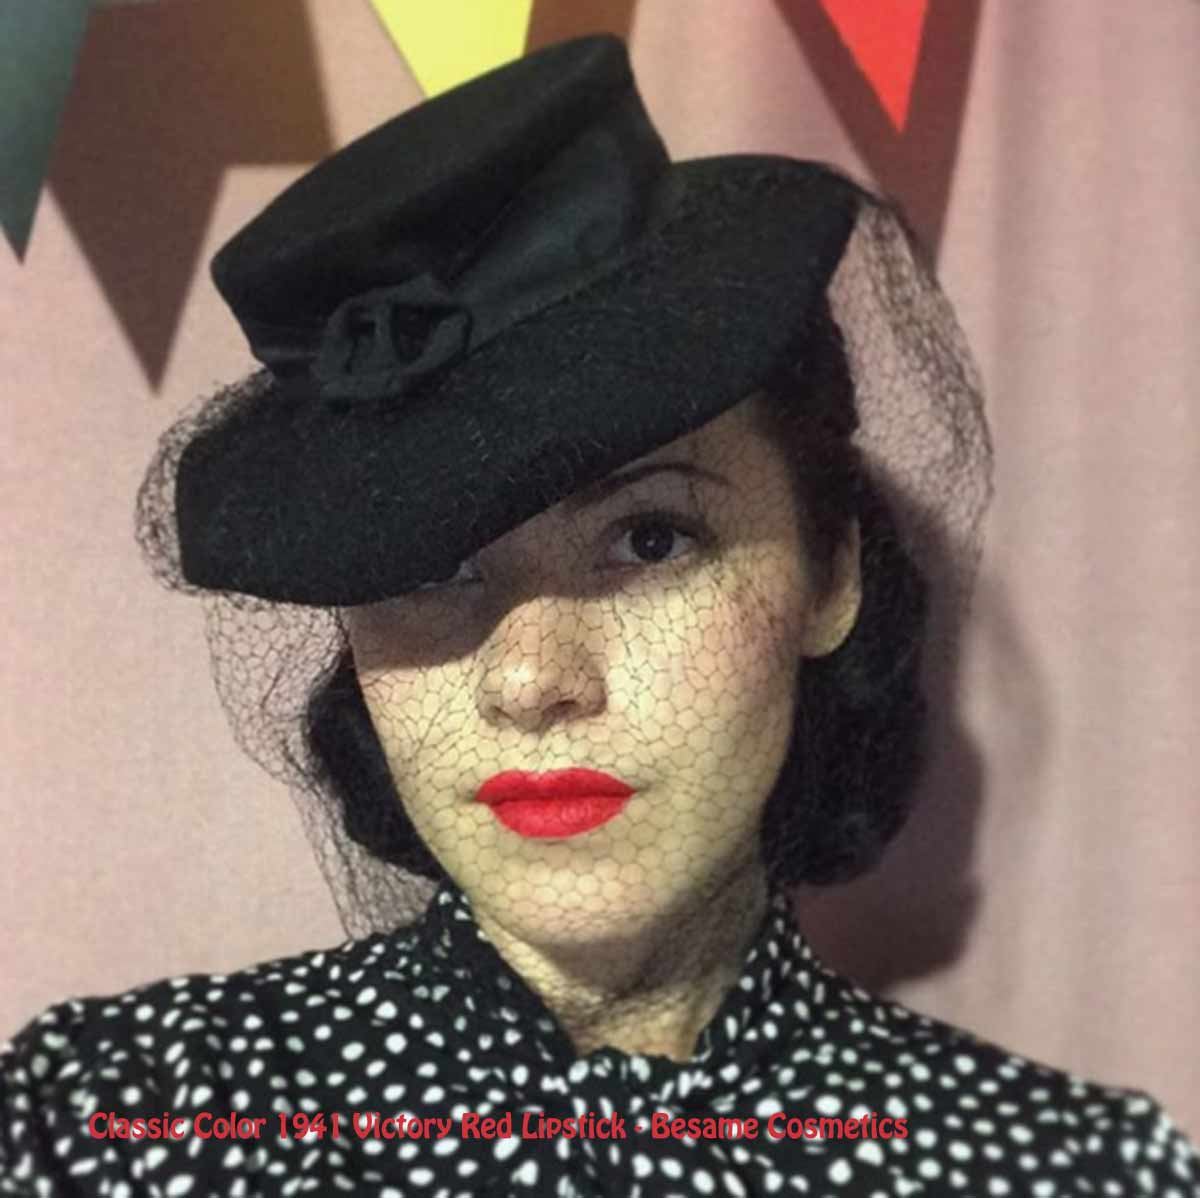 Classic-Color-1941-Victory-Red-Lipstick-Besame-Cosmetics.jpg